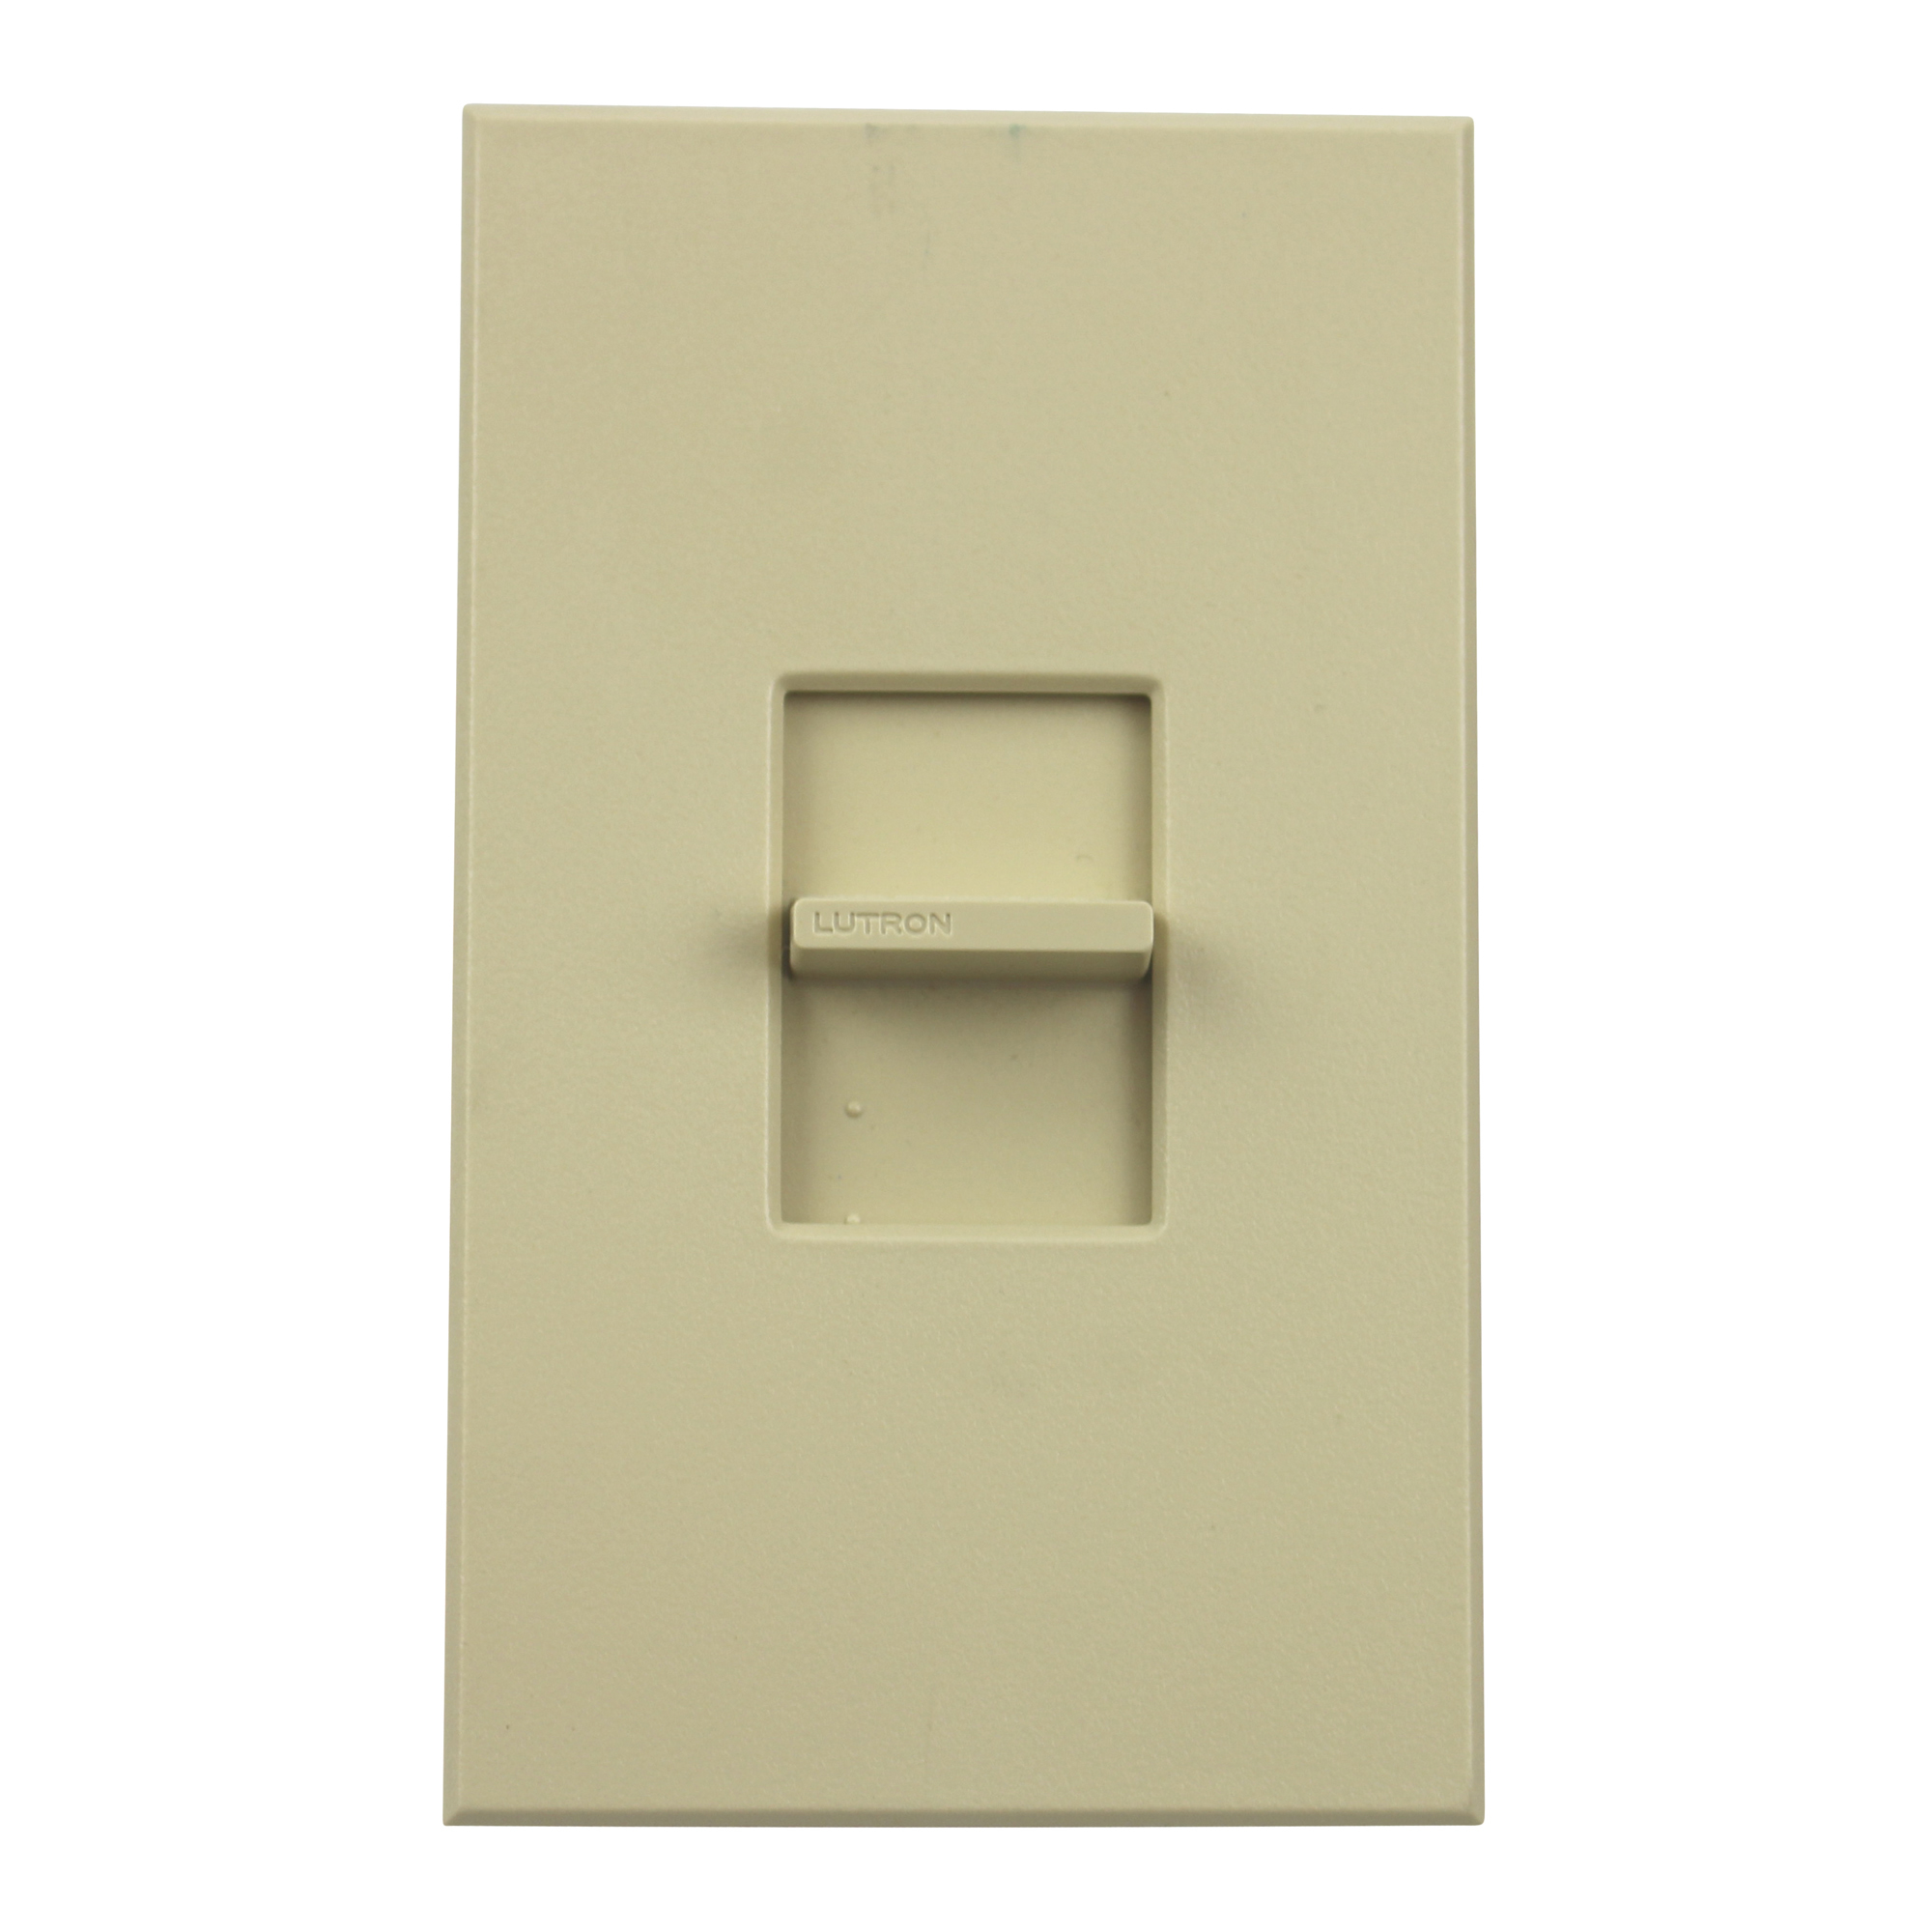 Lutron nt 3ps novat 3 way 20a light wall switch 120 277 for 120 volt magnetic door switch